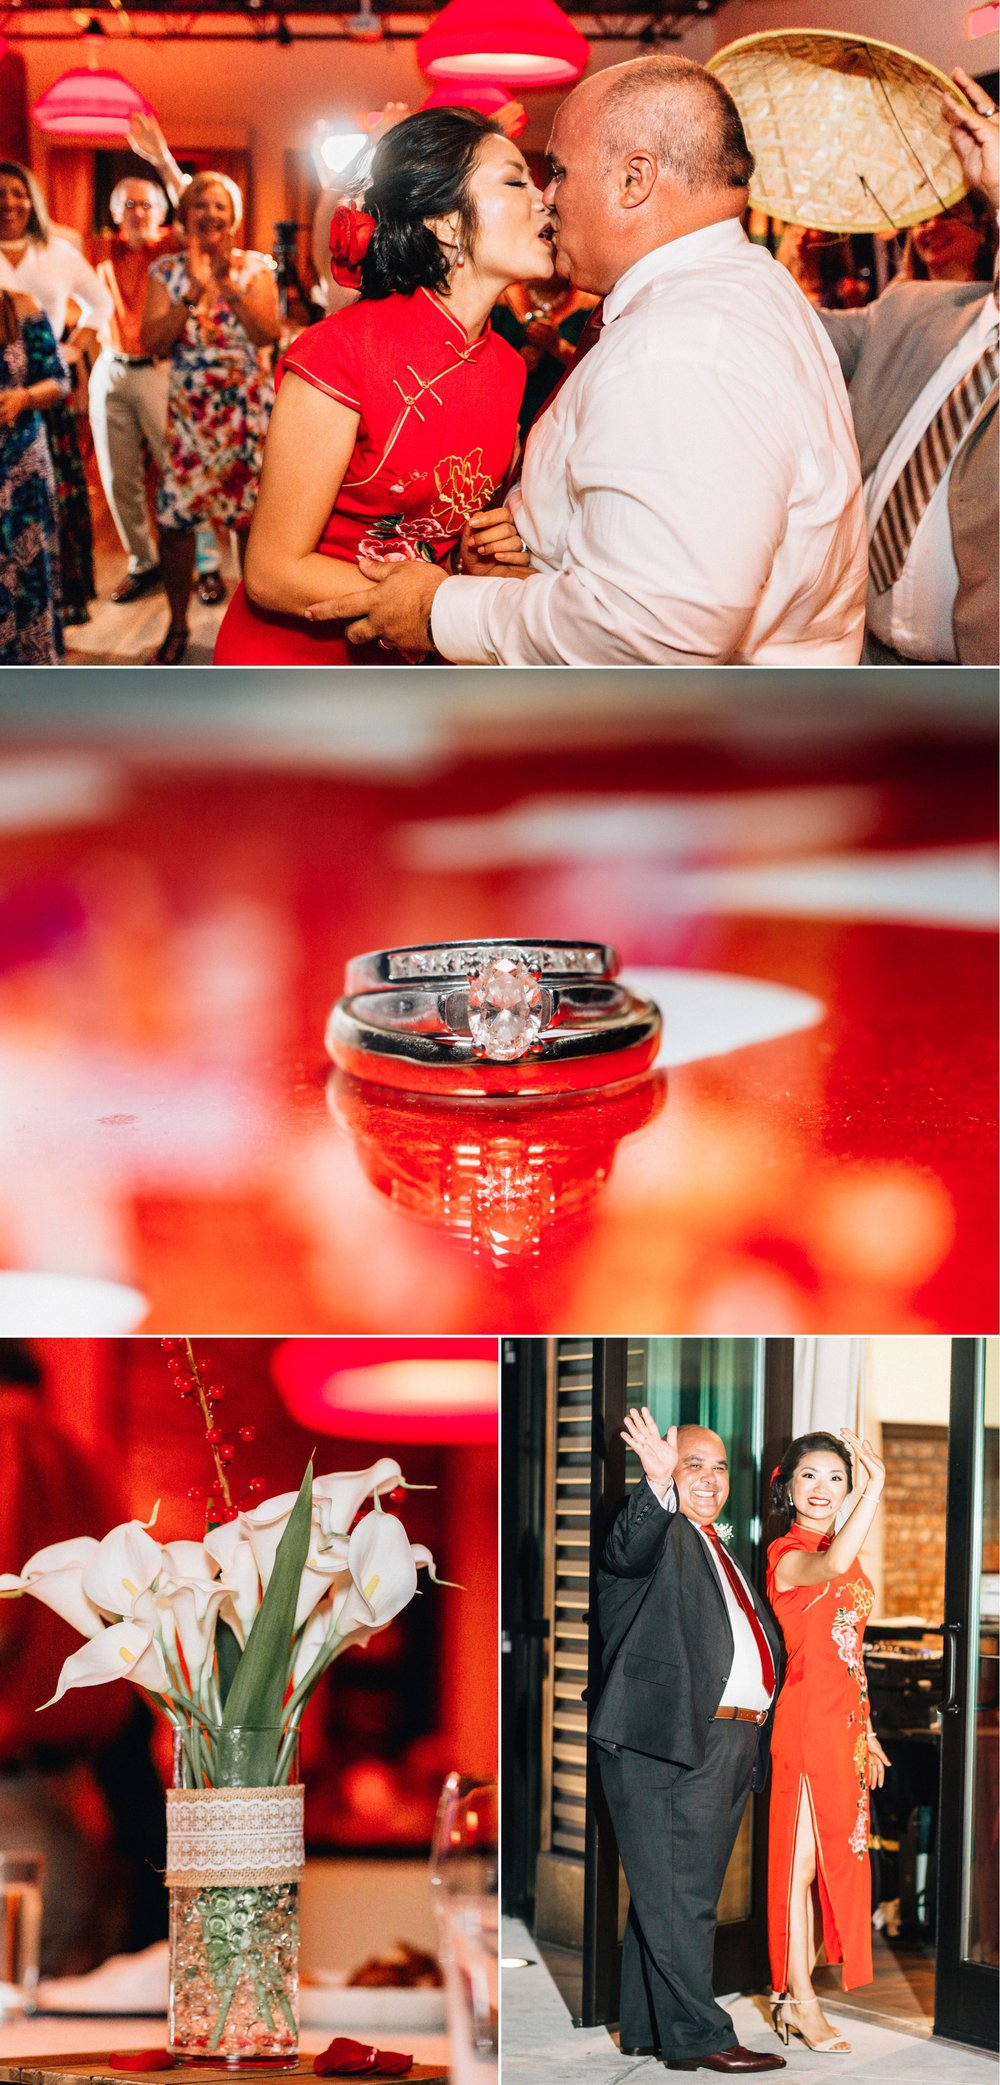 Lakehouse Lake Nona Wedding- Modern Colorful Red Multicultural- Susan + Manolo 52.jpg